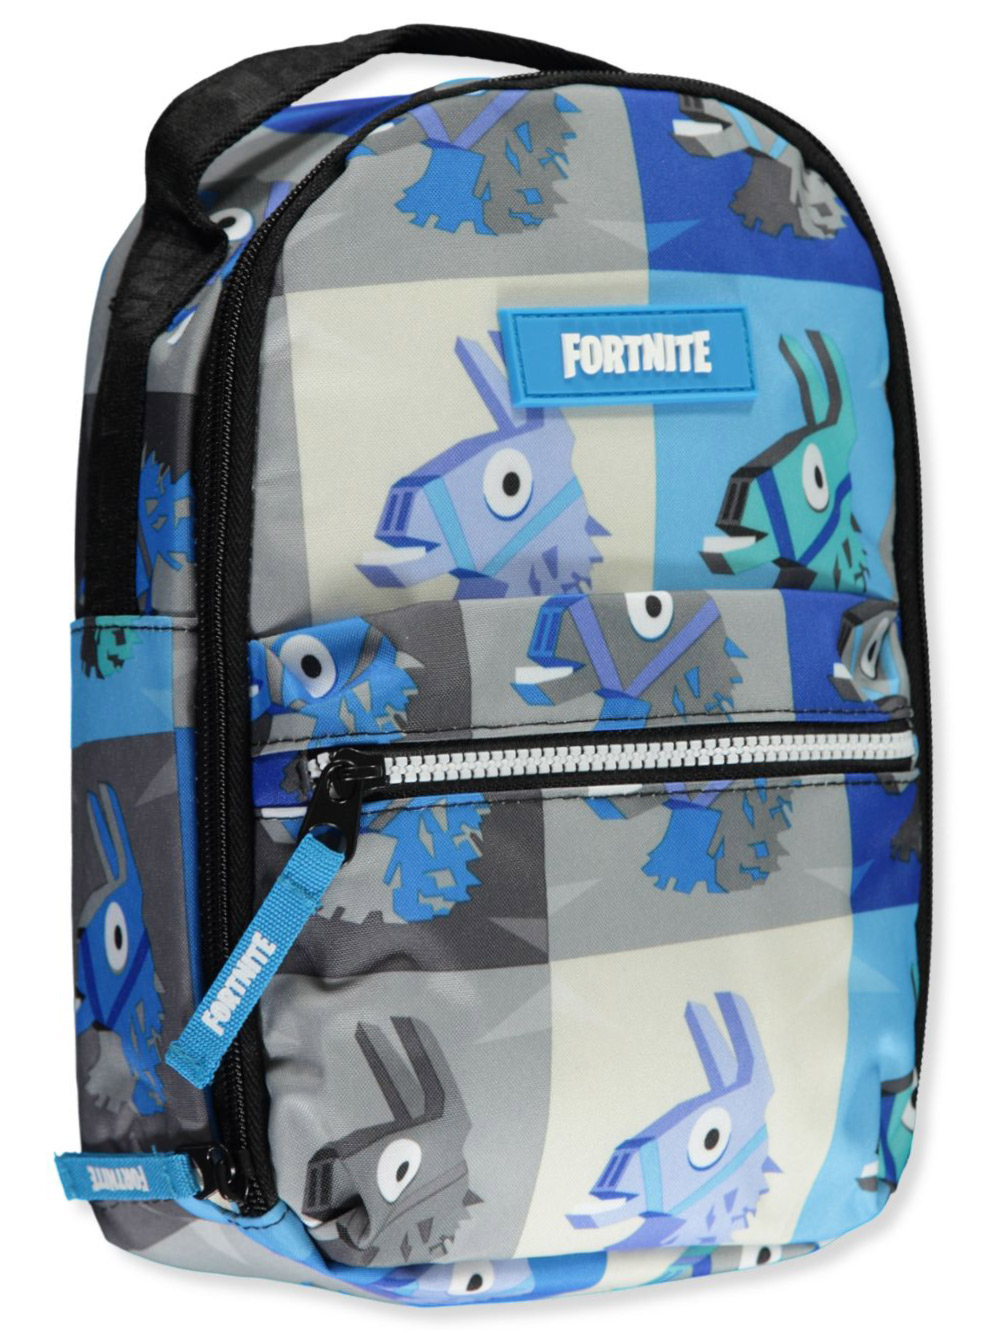 Lunch Boxes Fortnite Lunchbox